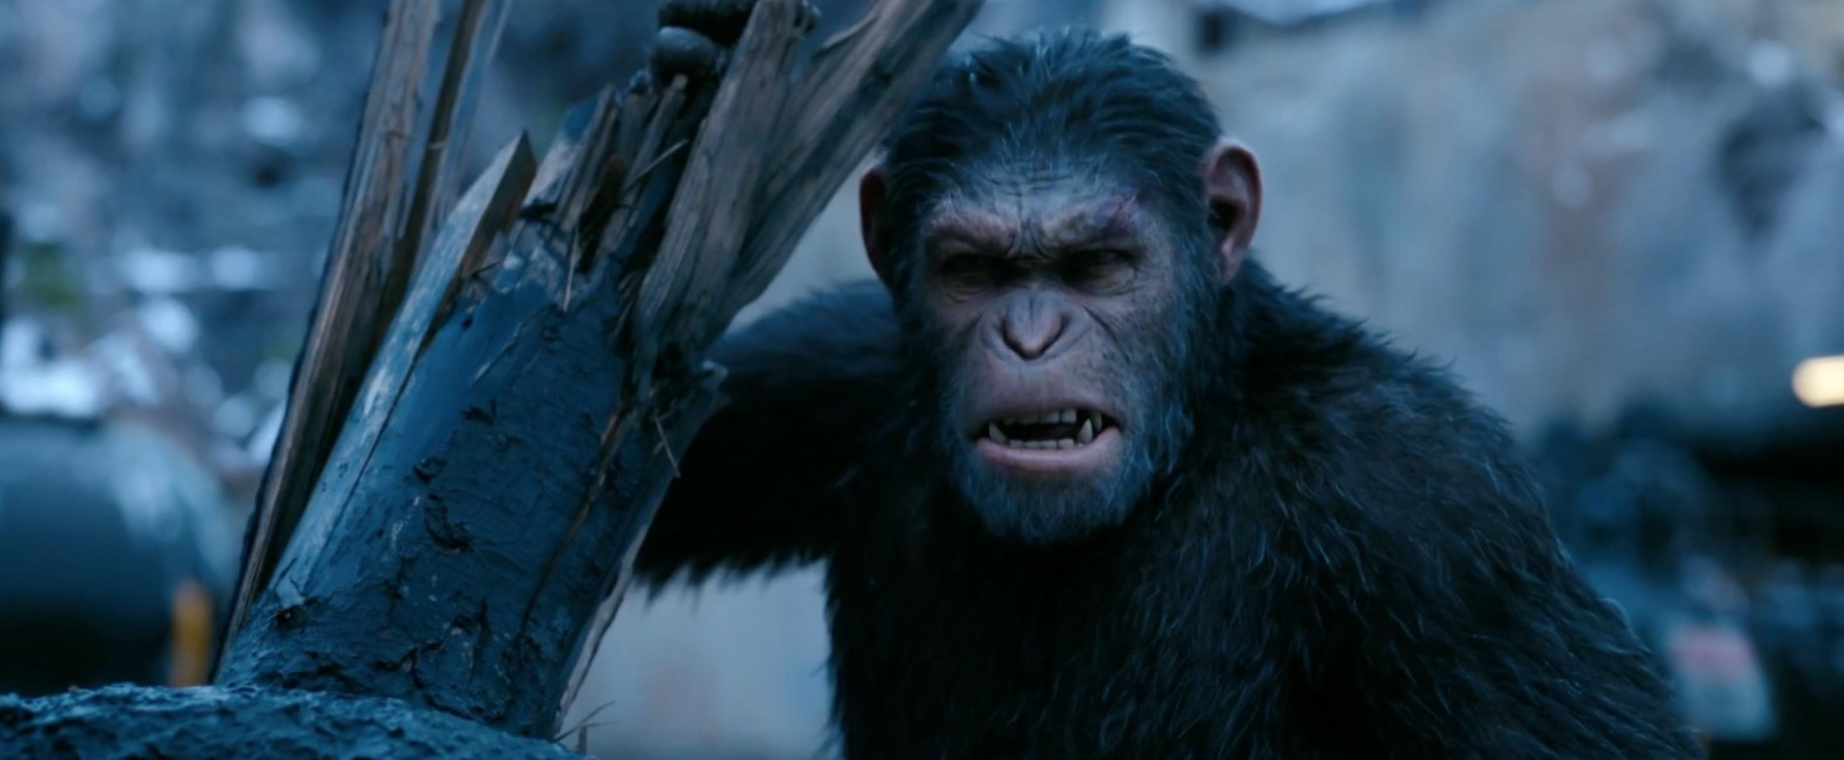 The Apes Make Their Final Stand